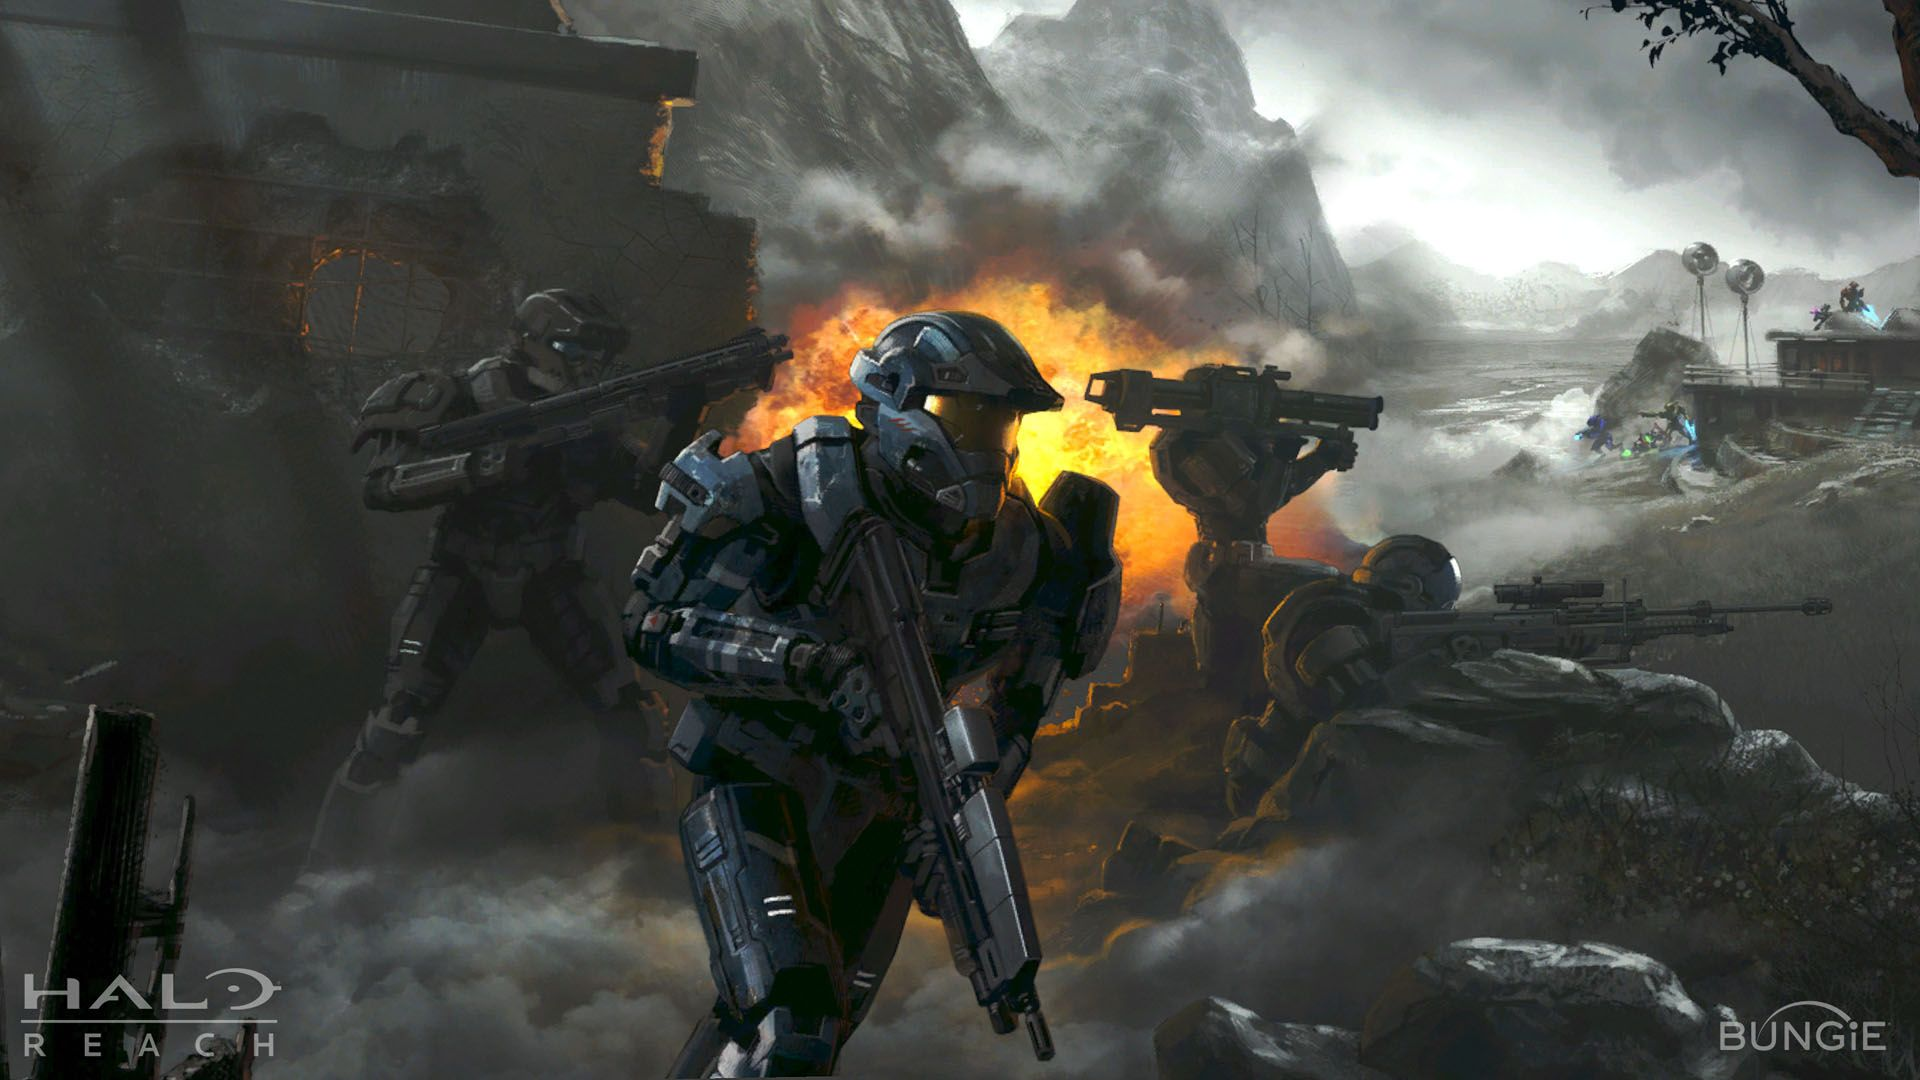 Halo Reach Concept Art 1920x1080 Wallpapers Halo Reach Halo